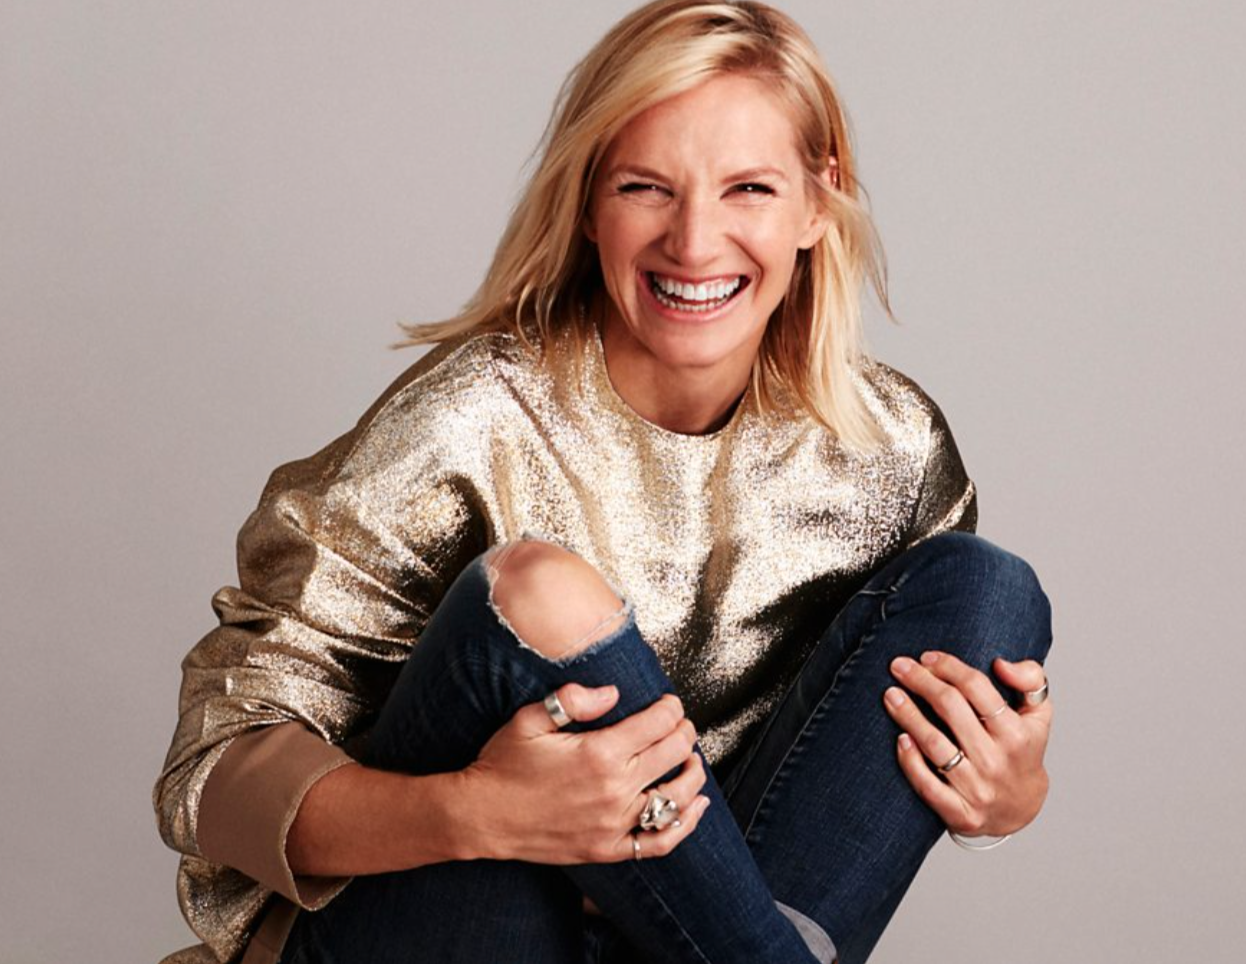 Above: BBC's presenter Jo Whiley gave a push for Christmas card sending on a recent edition of her evening Radio 2 programme.